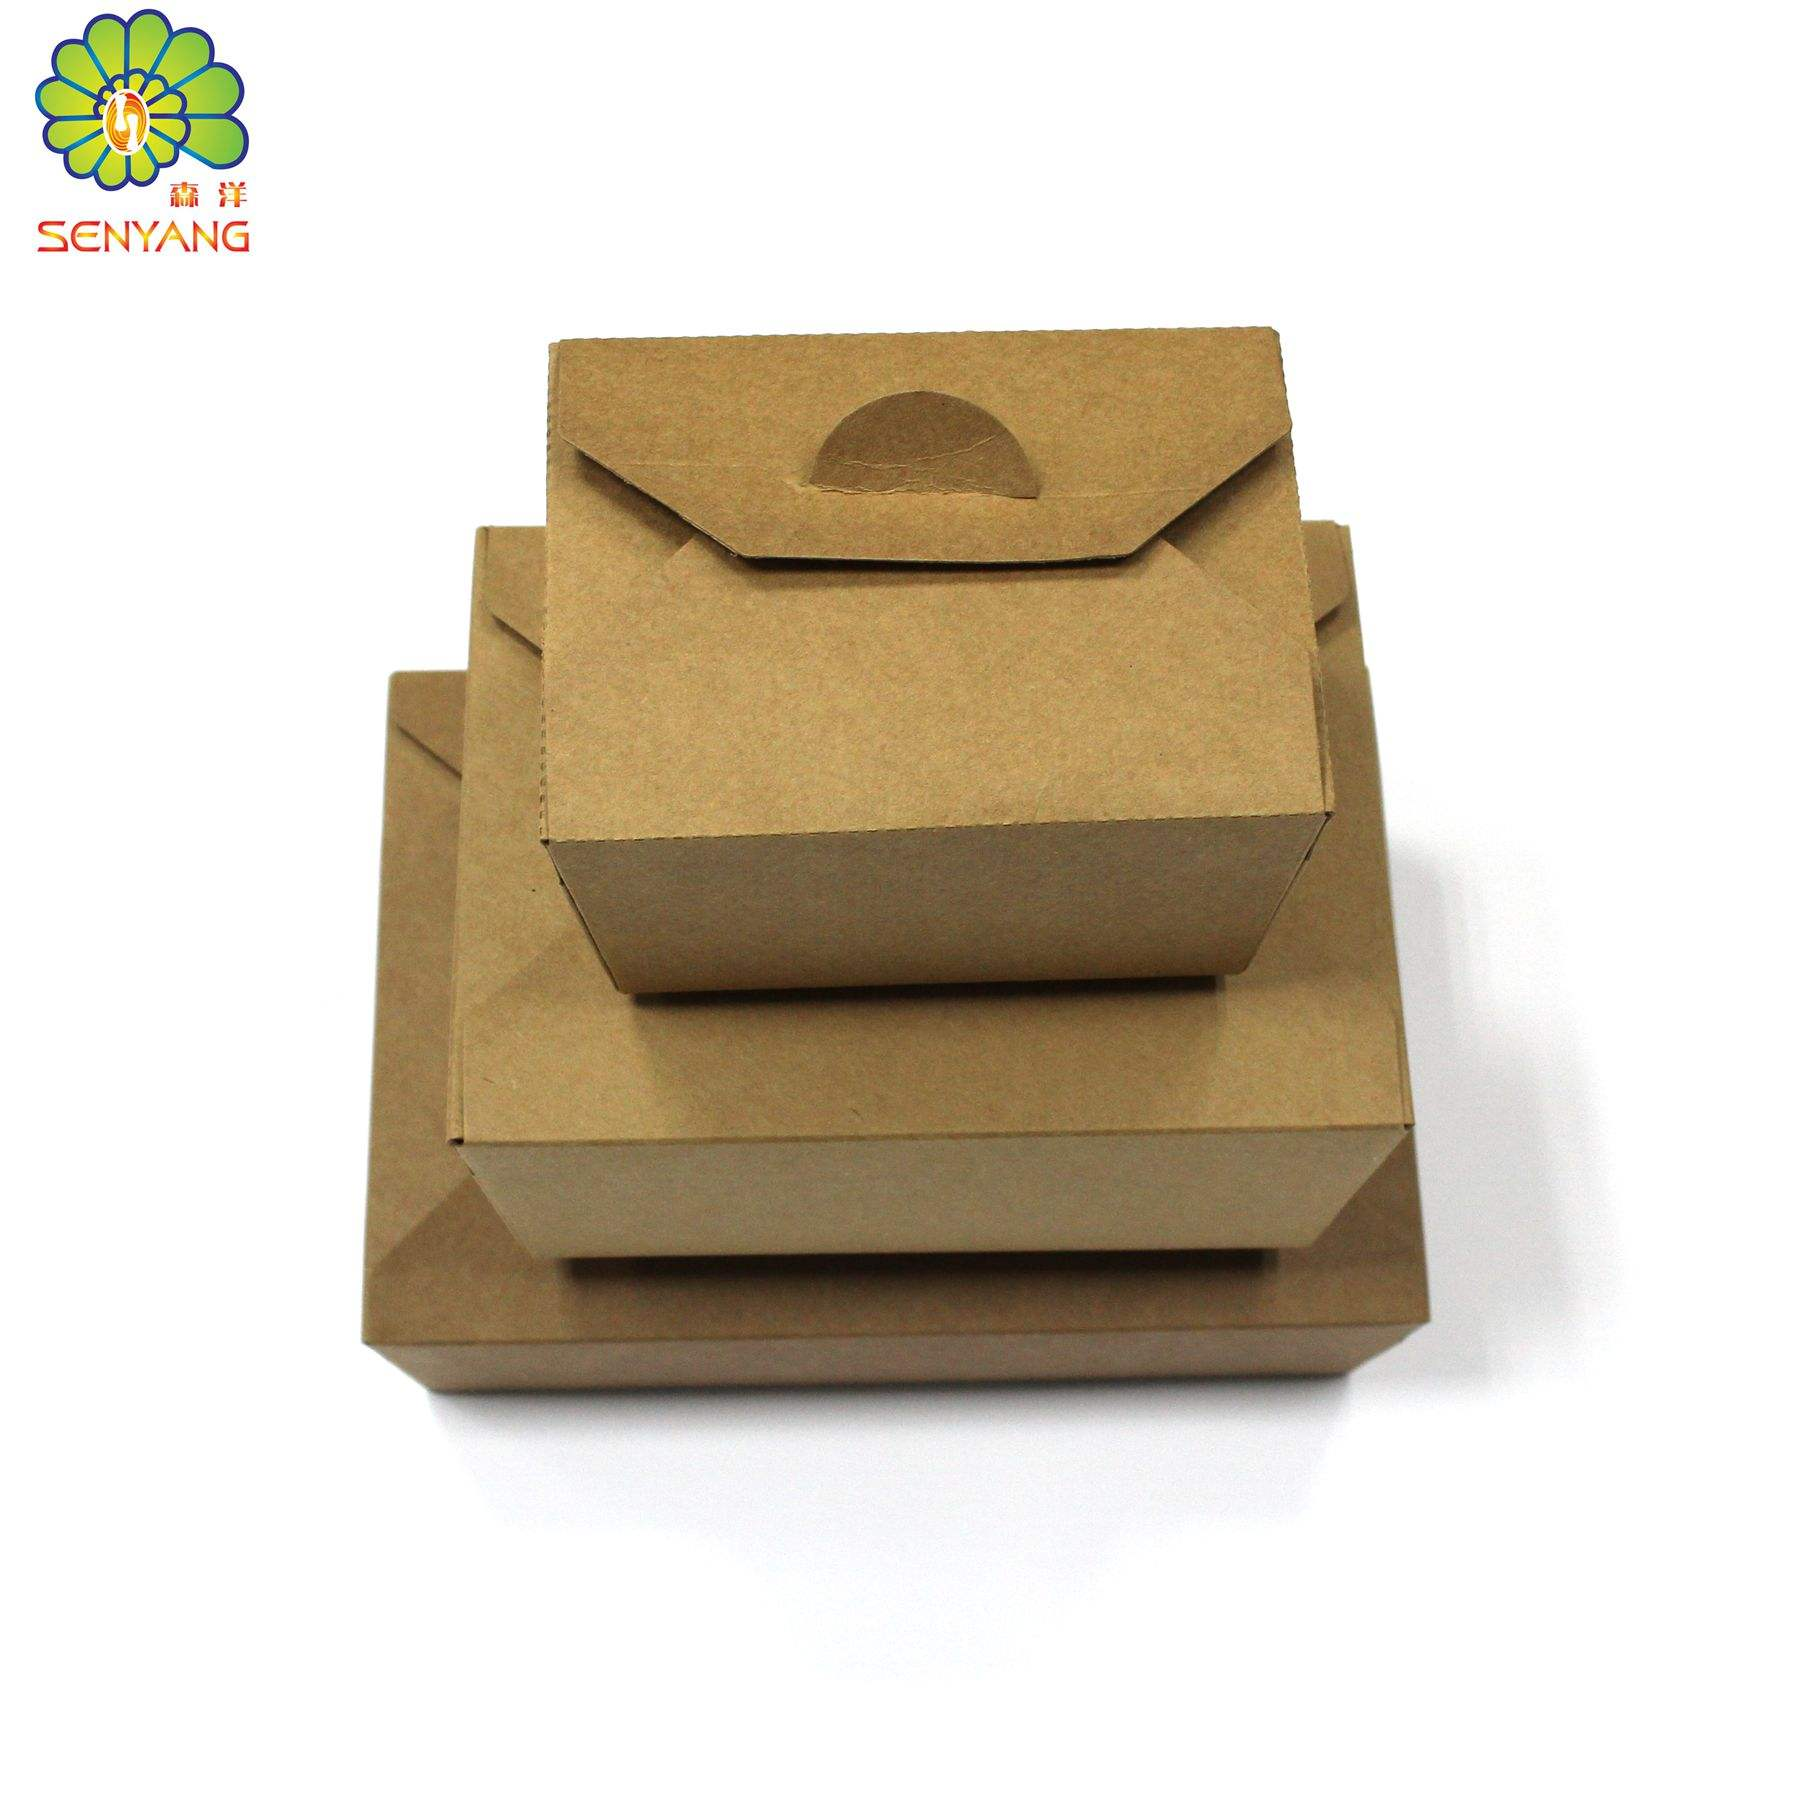 Fast Food Biodegradabile <span class=keywords><strong>Contenitore</strong></span> Recycle Box <span class=keywords><strong>Contenitore</strong></span> <span class=keywords><strong>Di</strong></span> Carta Kraft <span class=keywords><strong>di</strong></span> Togliere Cibo Kraft Pacchetto della scatola <span class=keywords><strong>di</strong></span> pranzo